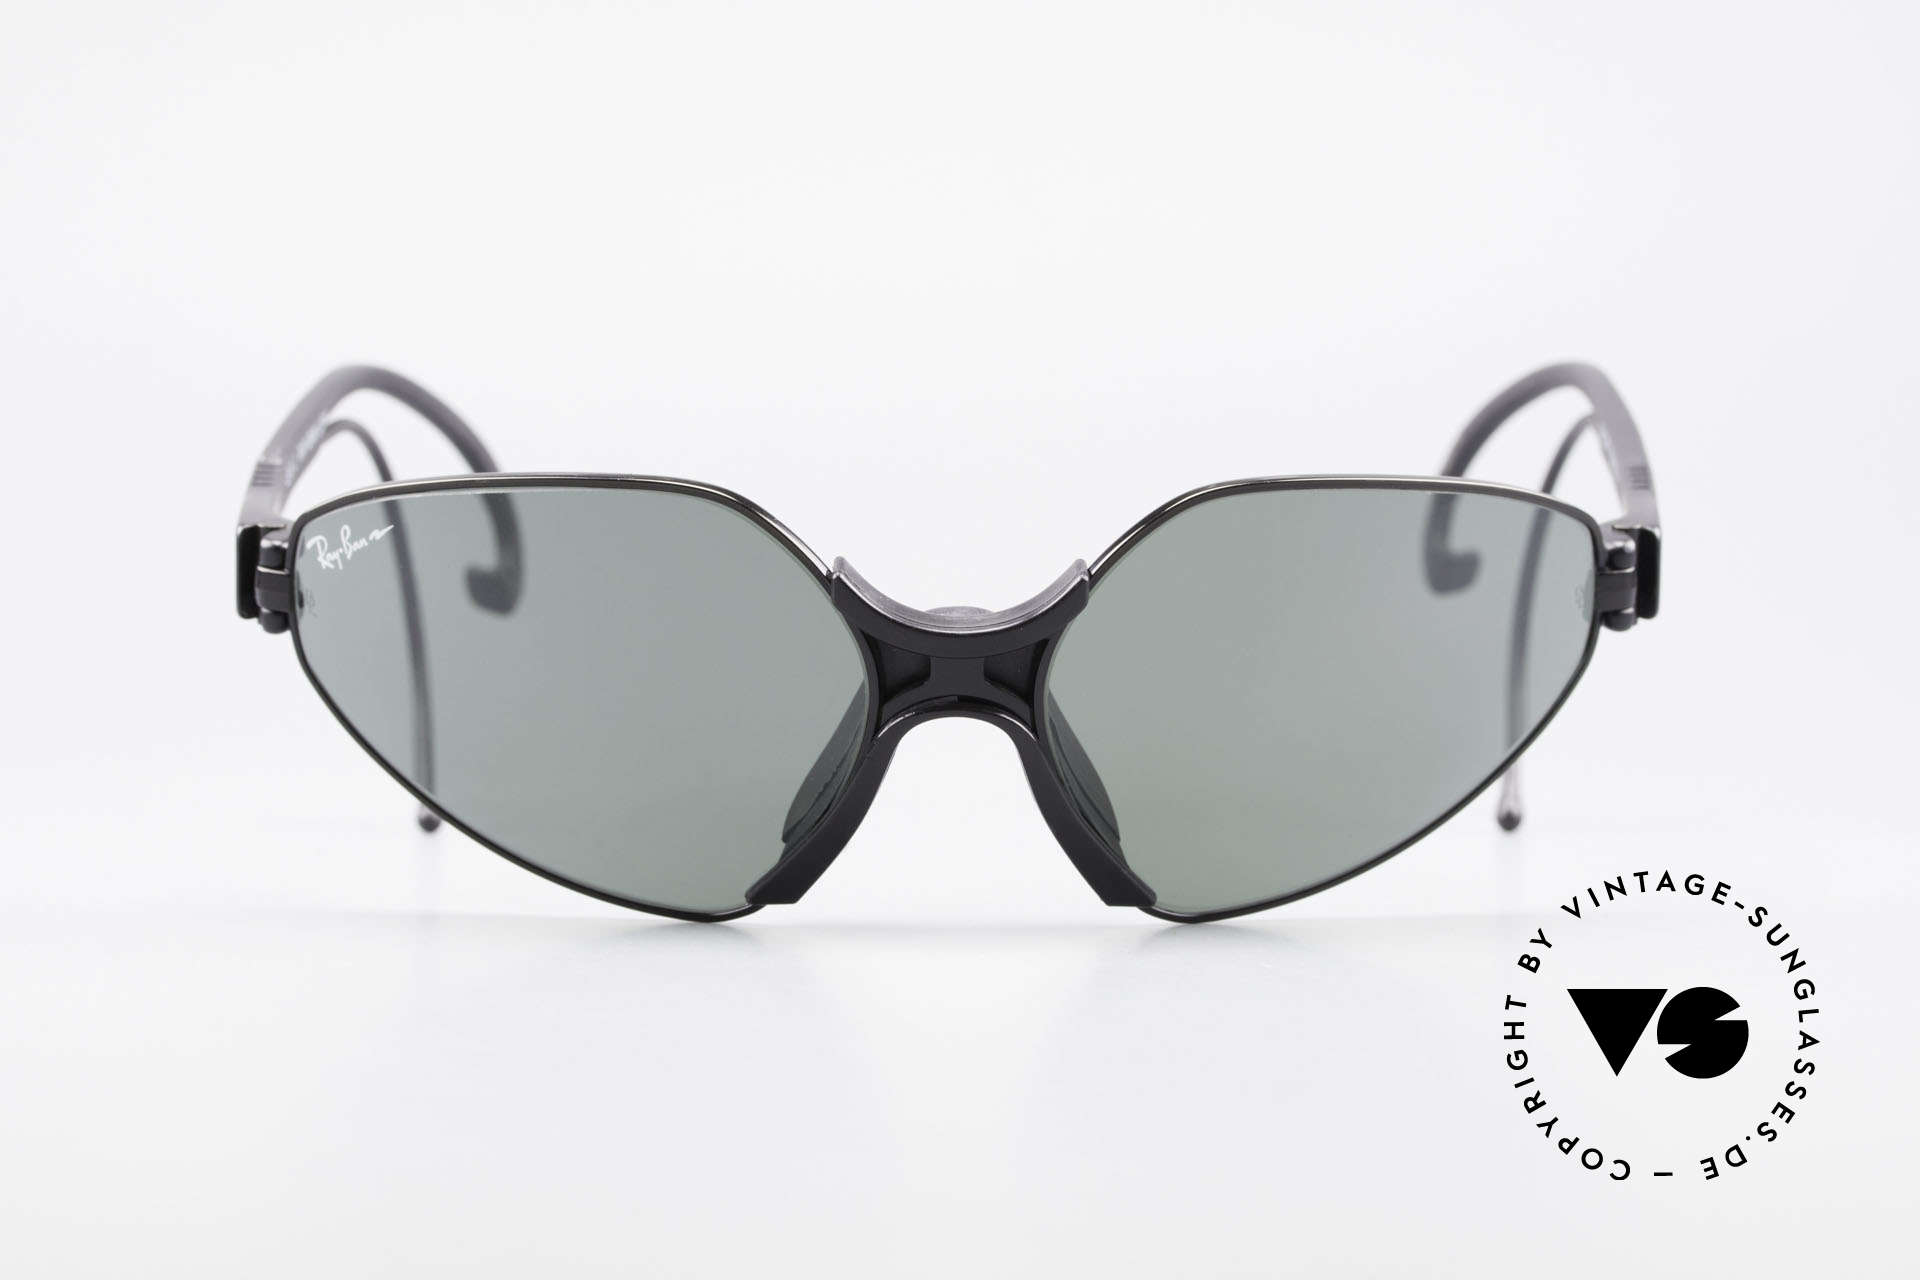 Ray Ban Sport Series 1 G20 Chromax B&L Sun Lenses, high-end G20 Chromax lenses with 80% absorption, Made for Men